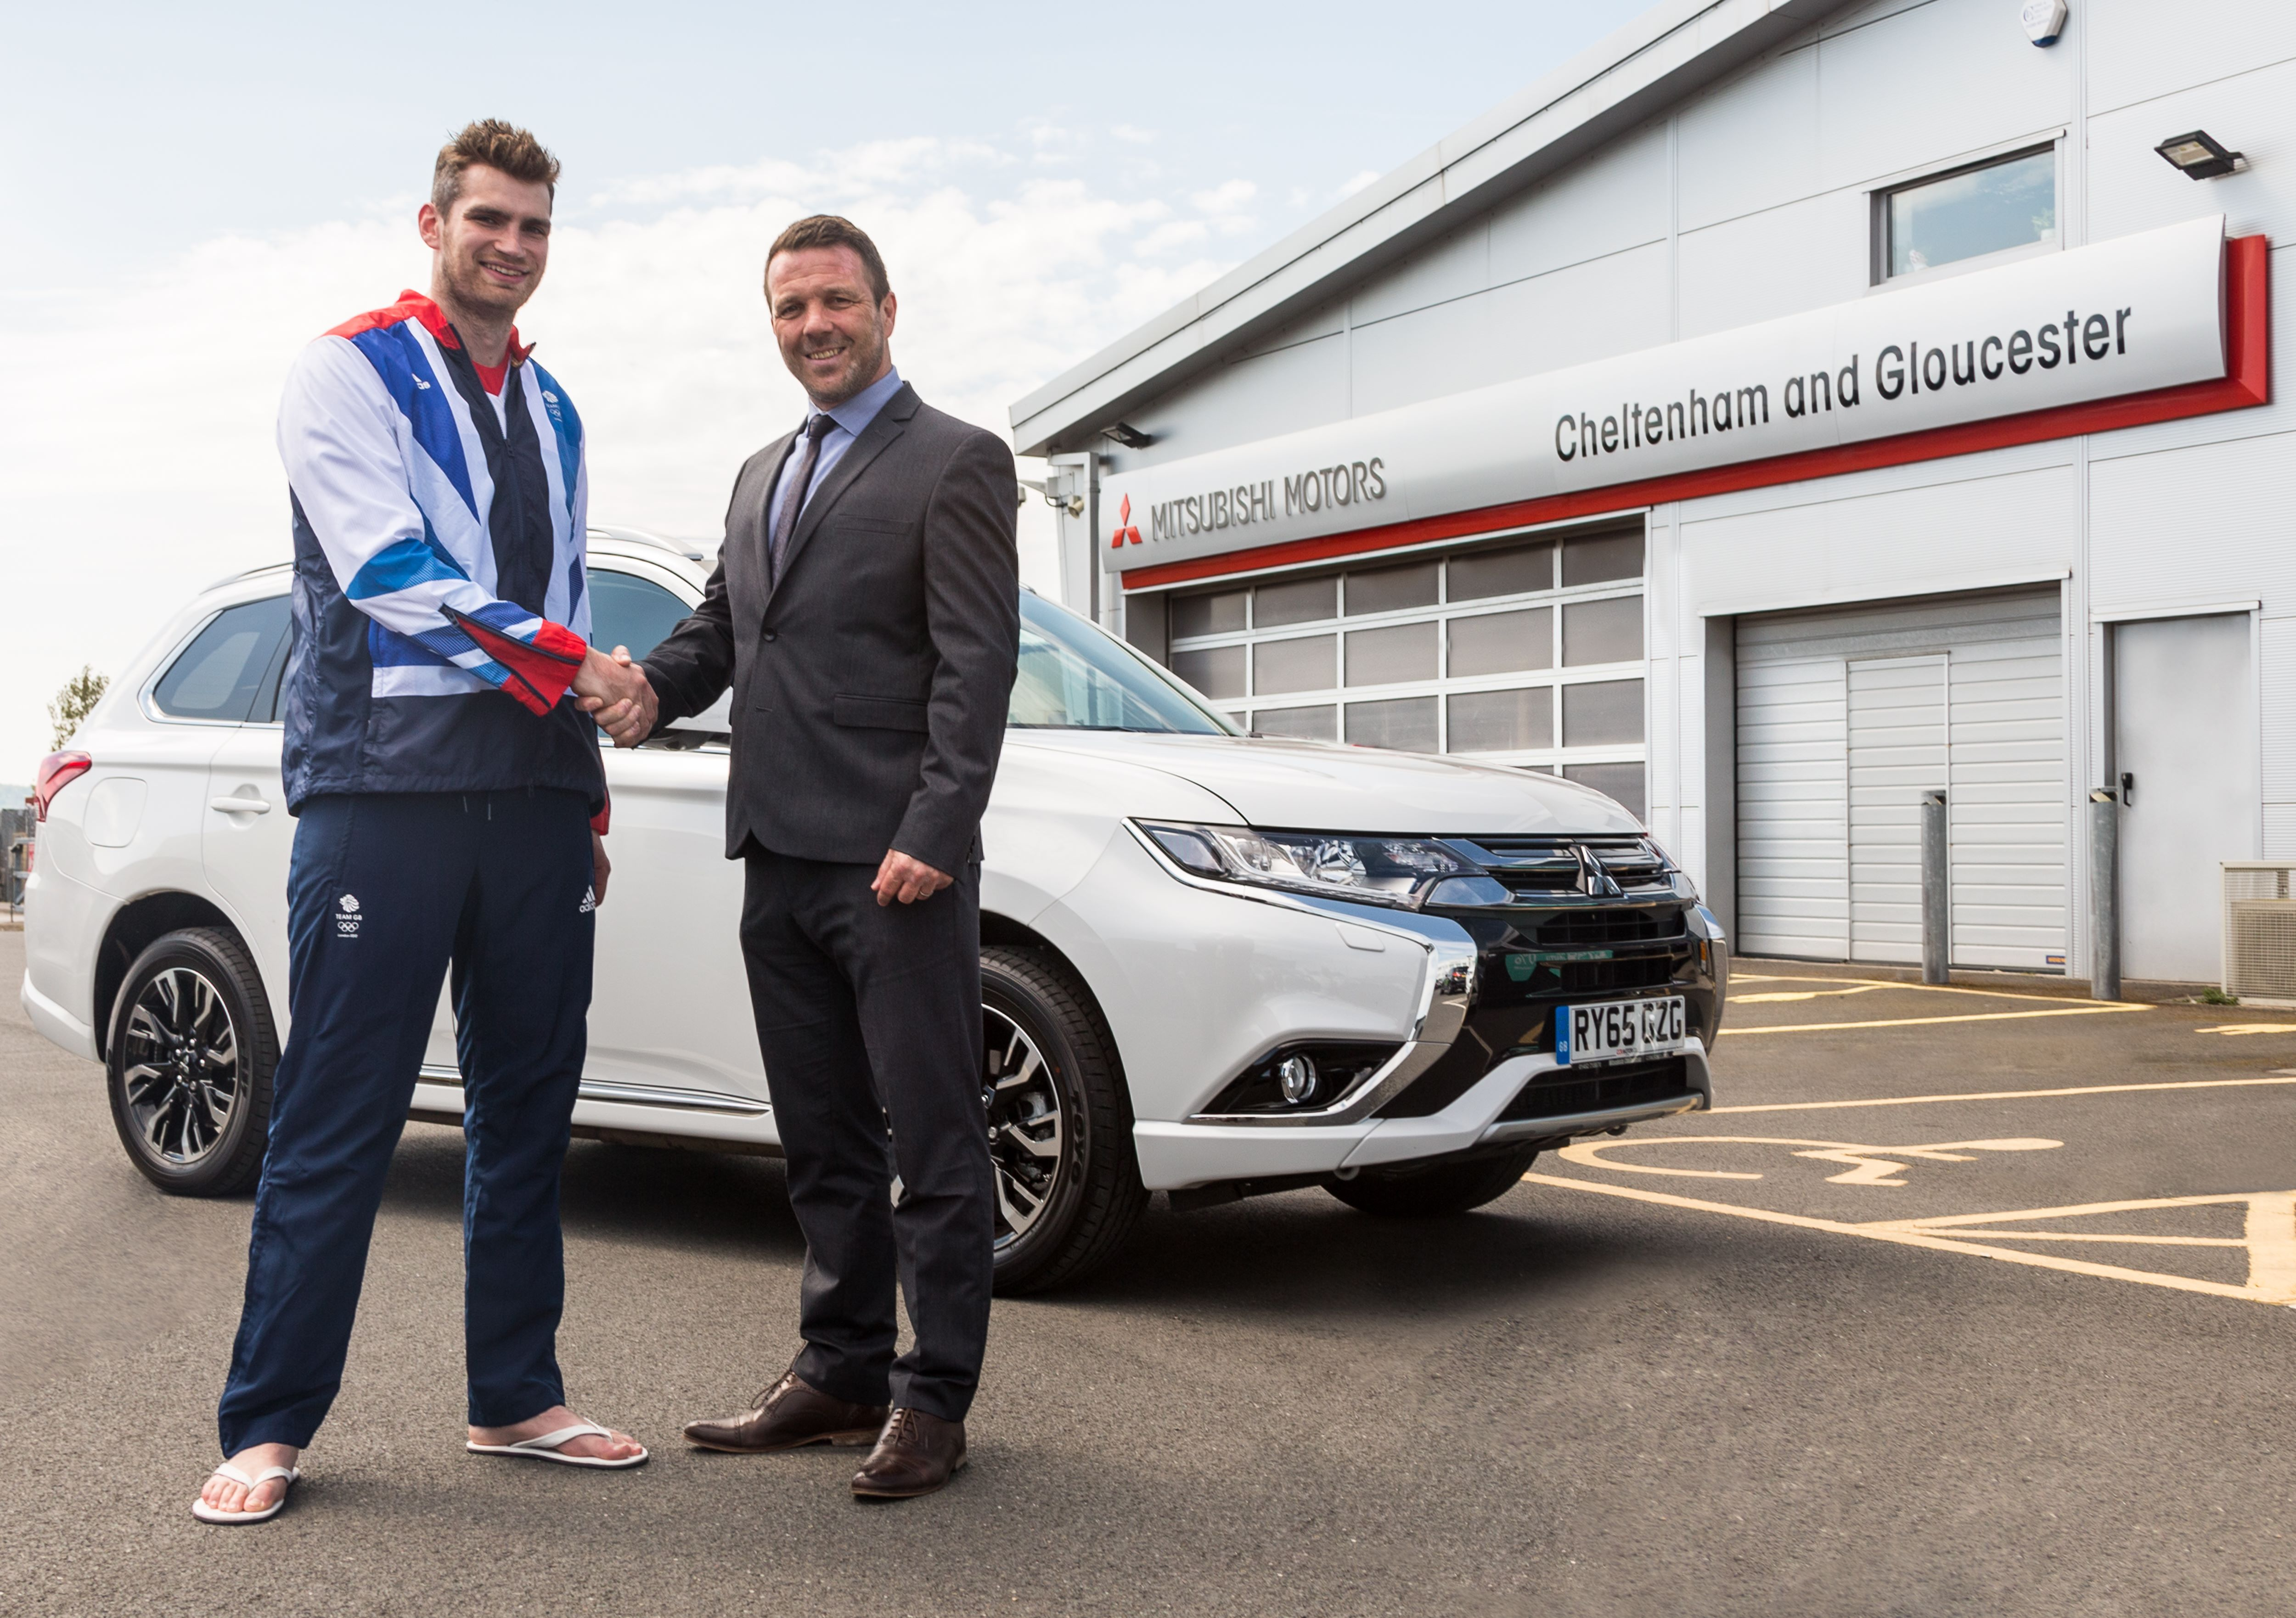 CCR Mitsubishi named title sponsor of the 2016 British Water Polo Championships